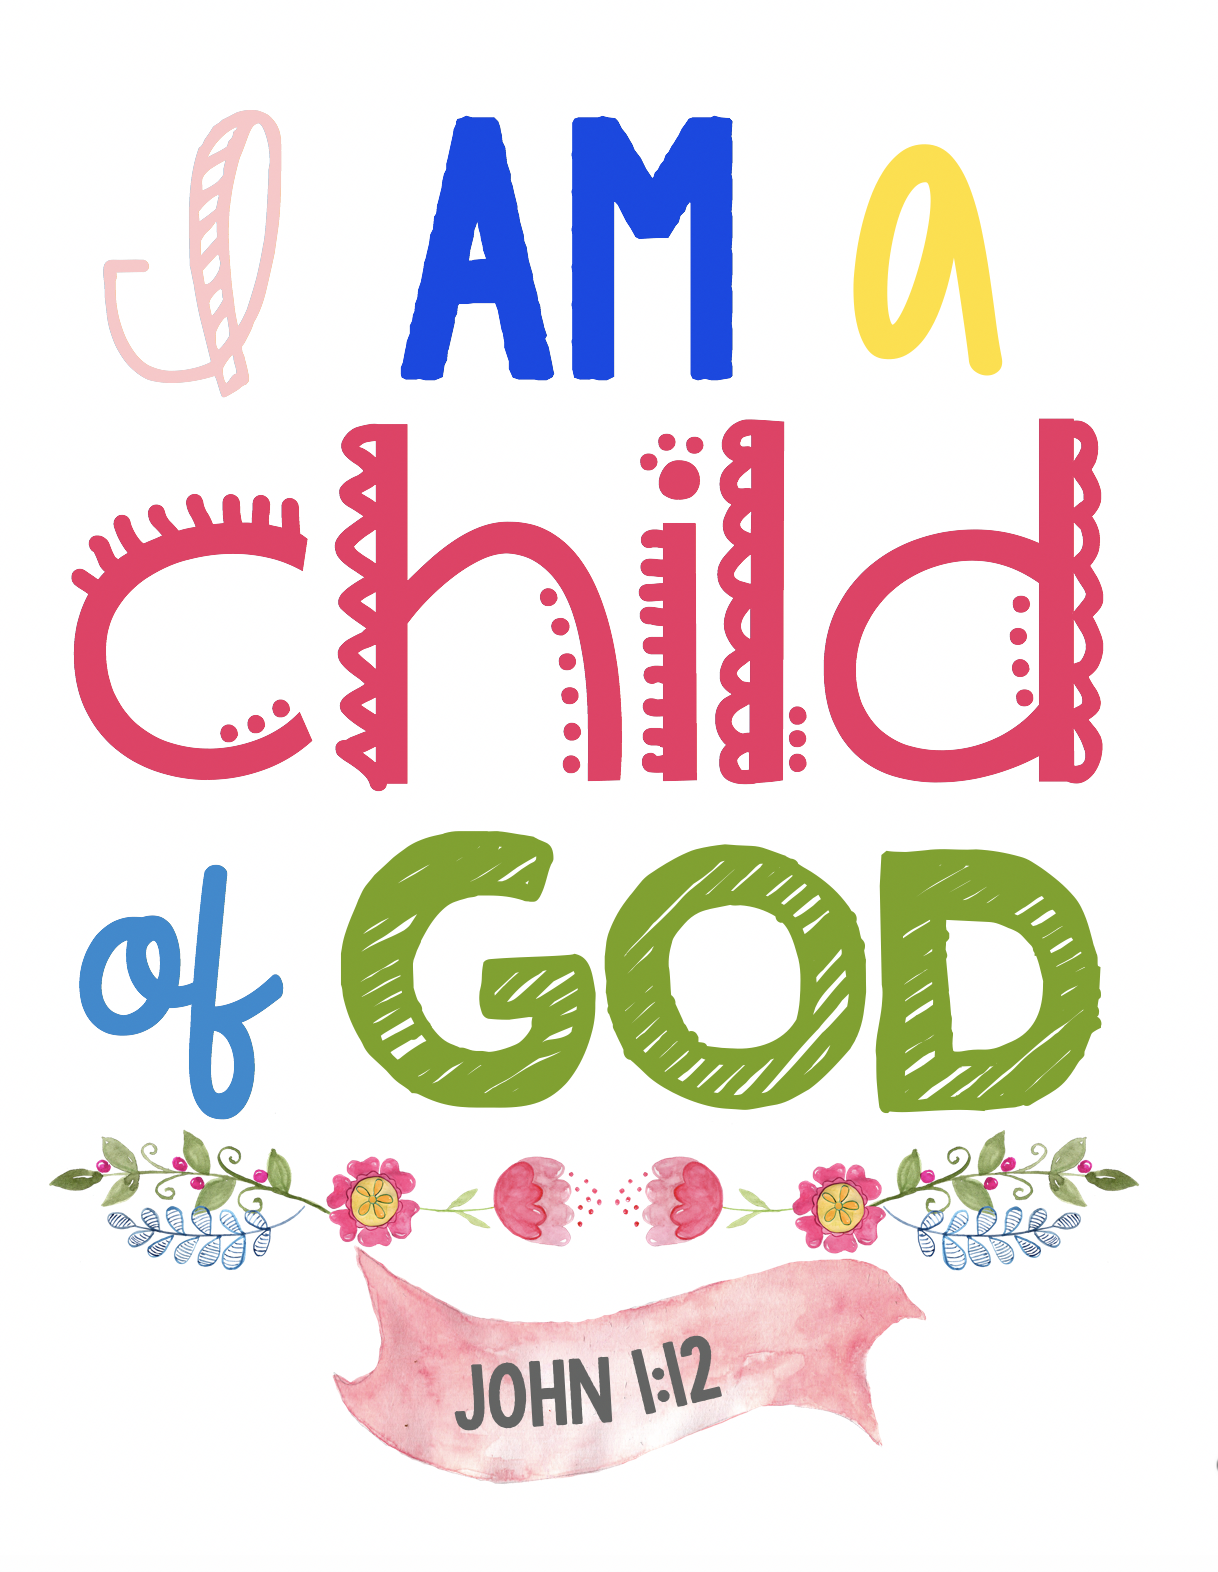 Read Full Disclosure I Hope You Enjoy These FREE Printables That Can Use To Decorate Your Home Childs Bedroom Sunday School Or Classroom